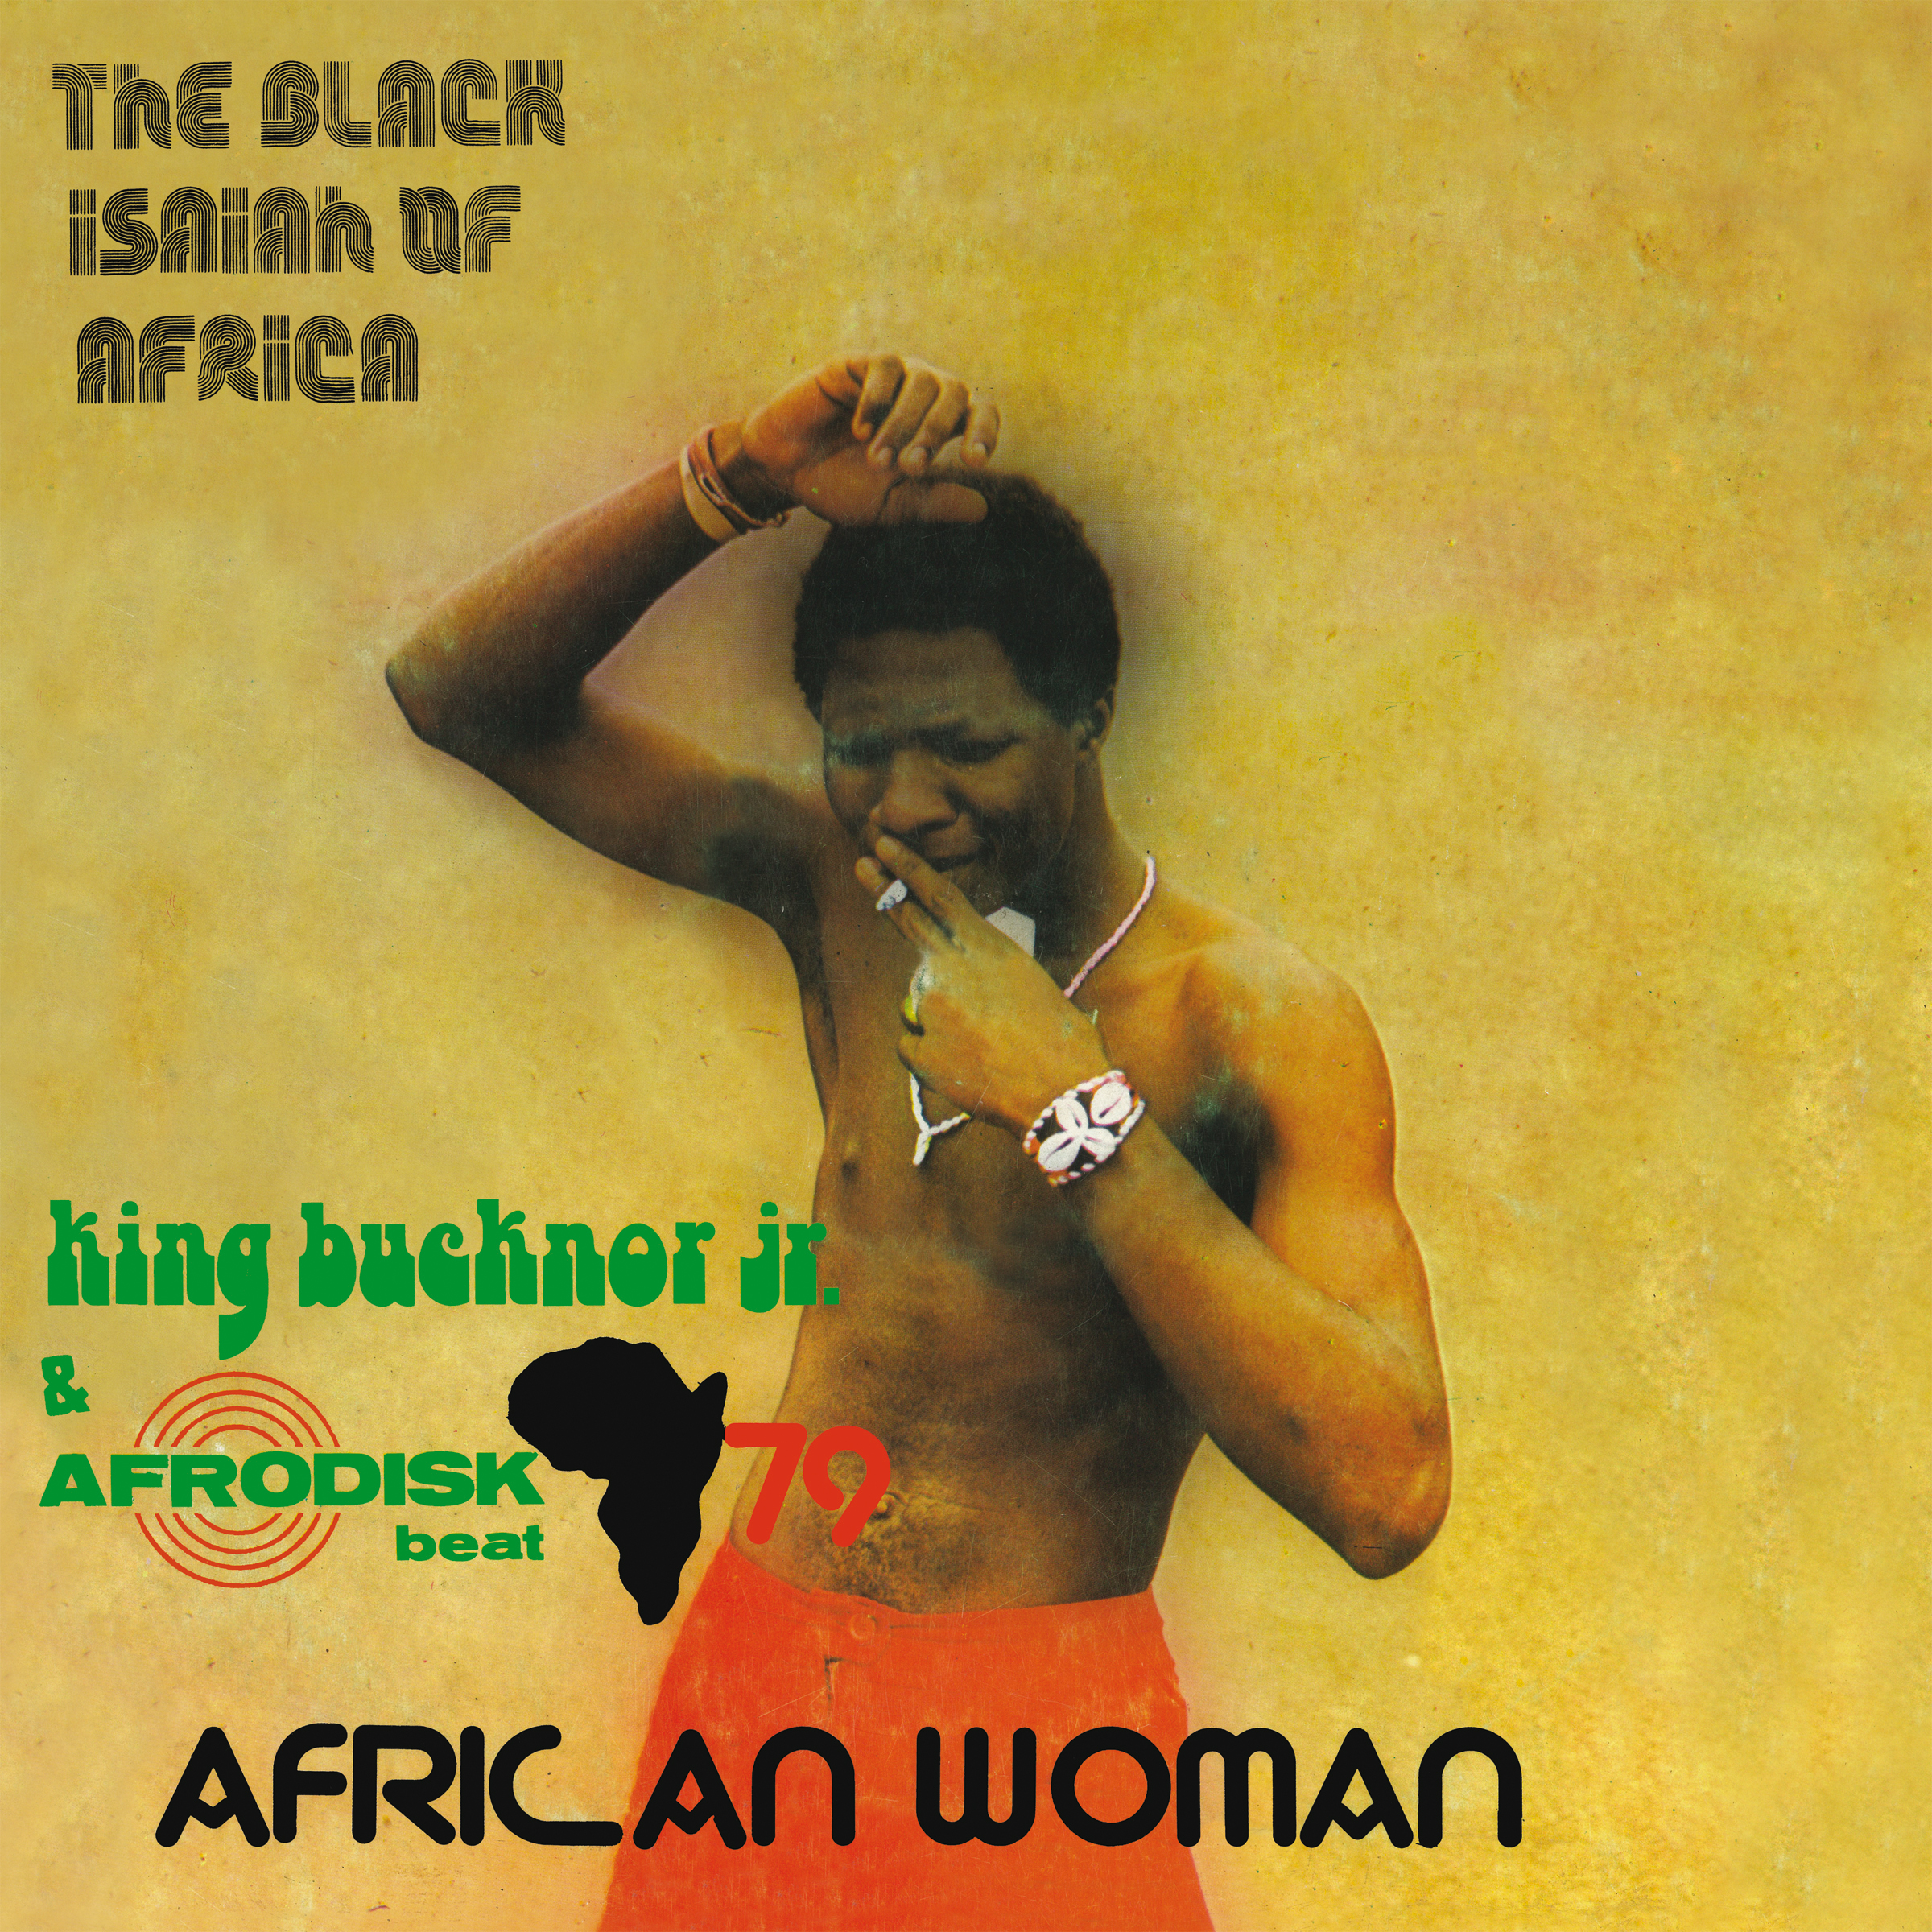 King Bucknor Jr & Afrodisk Beat 79